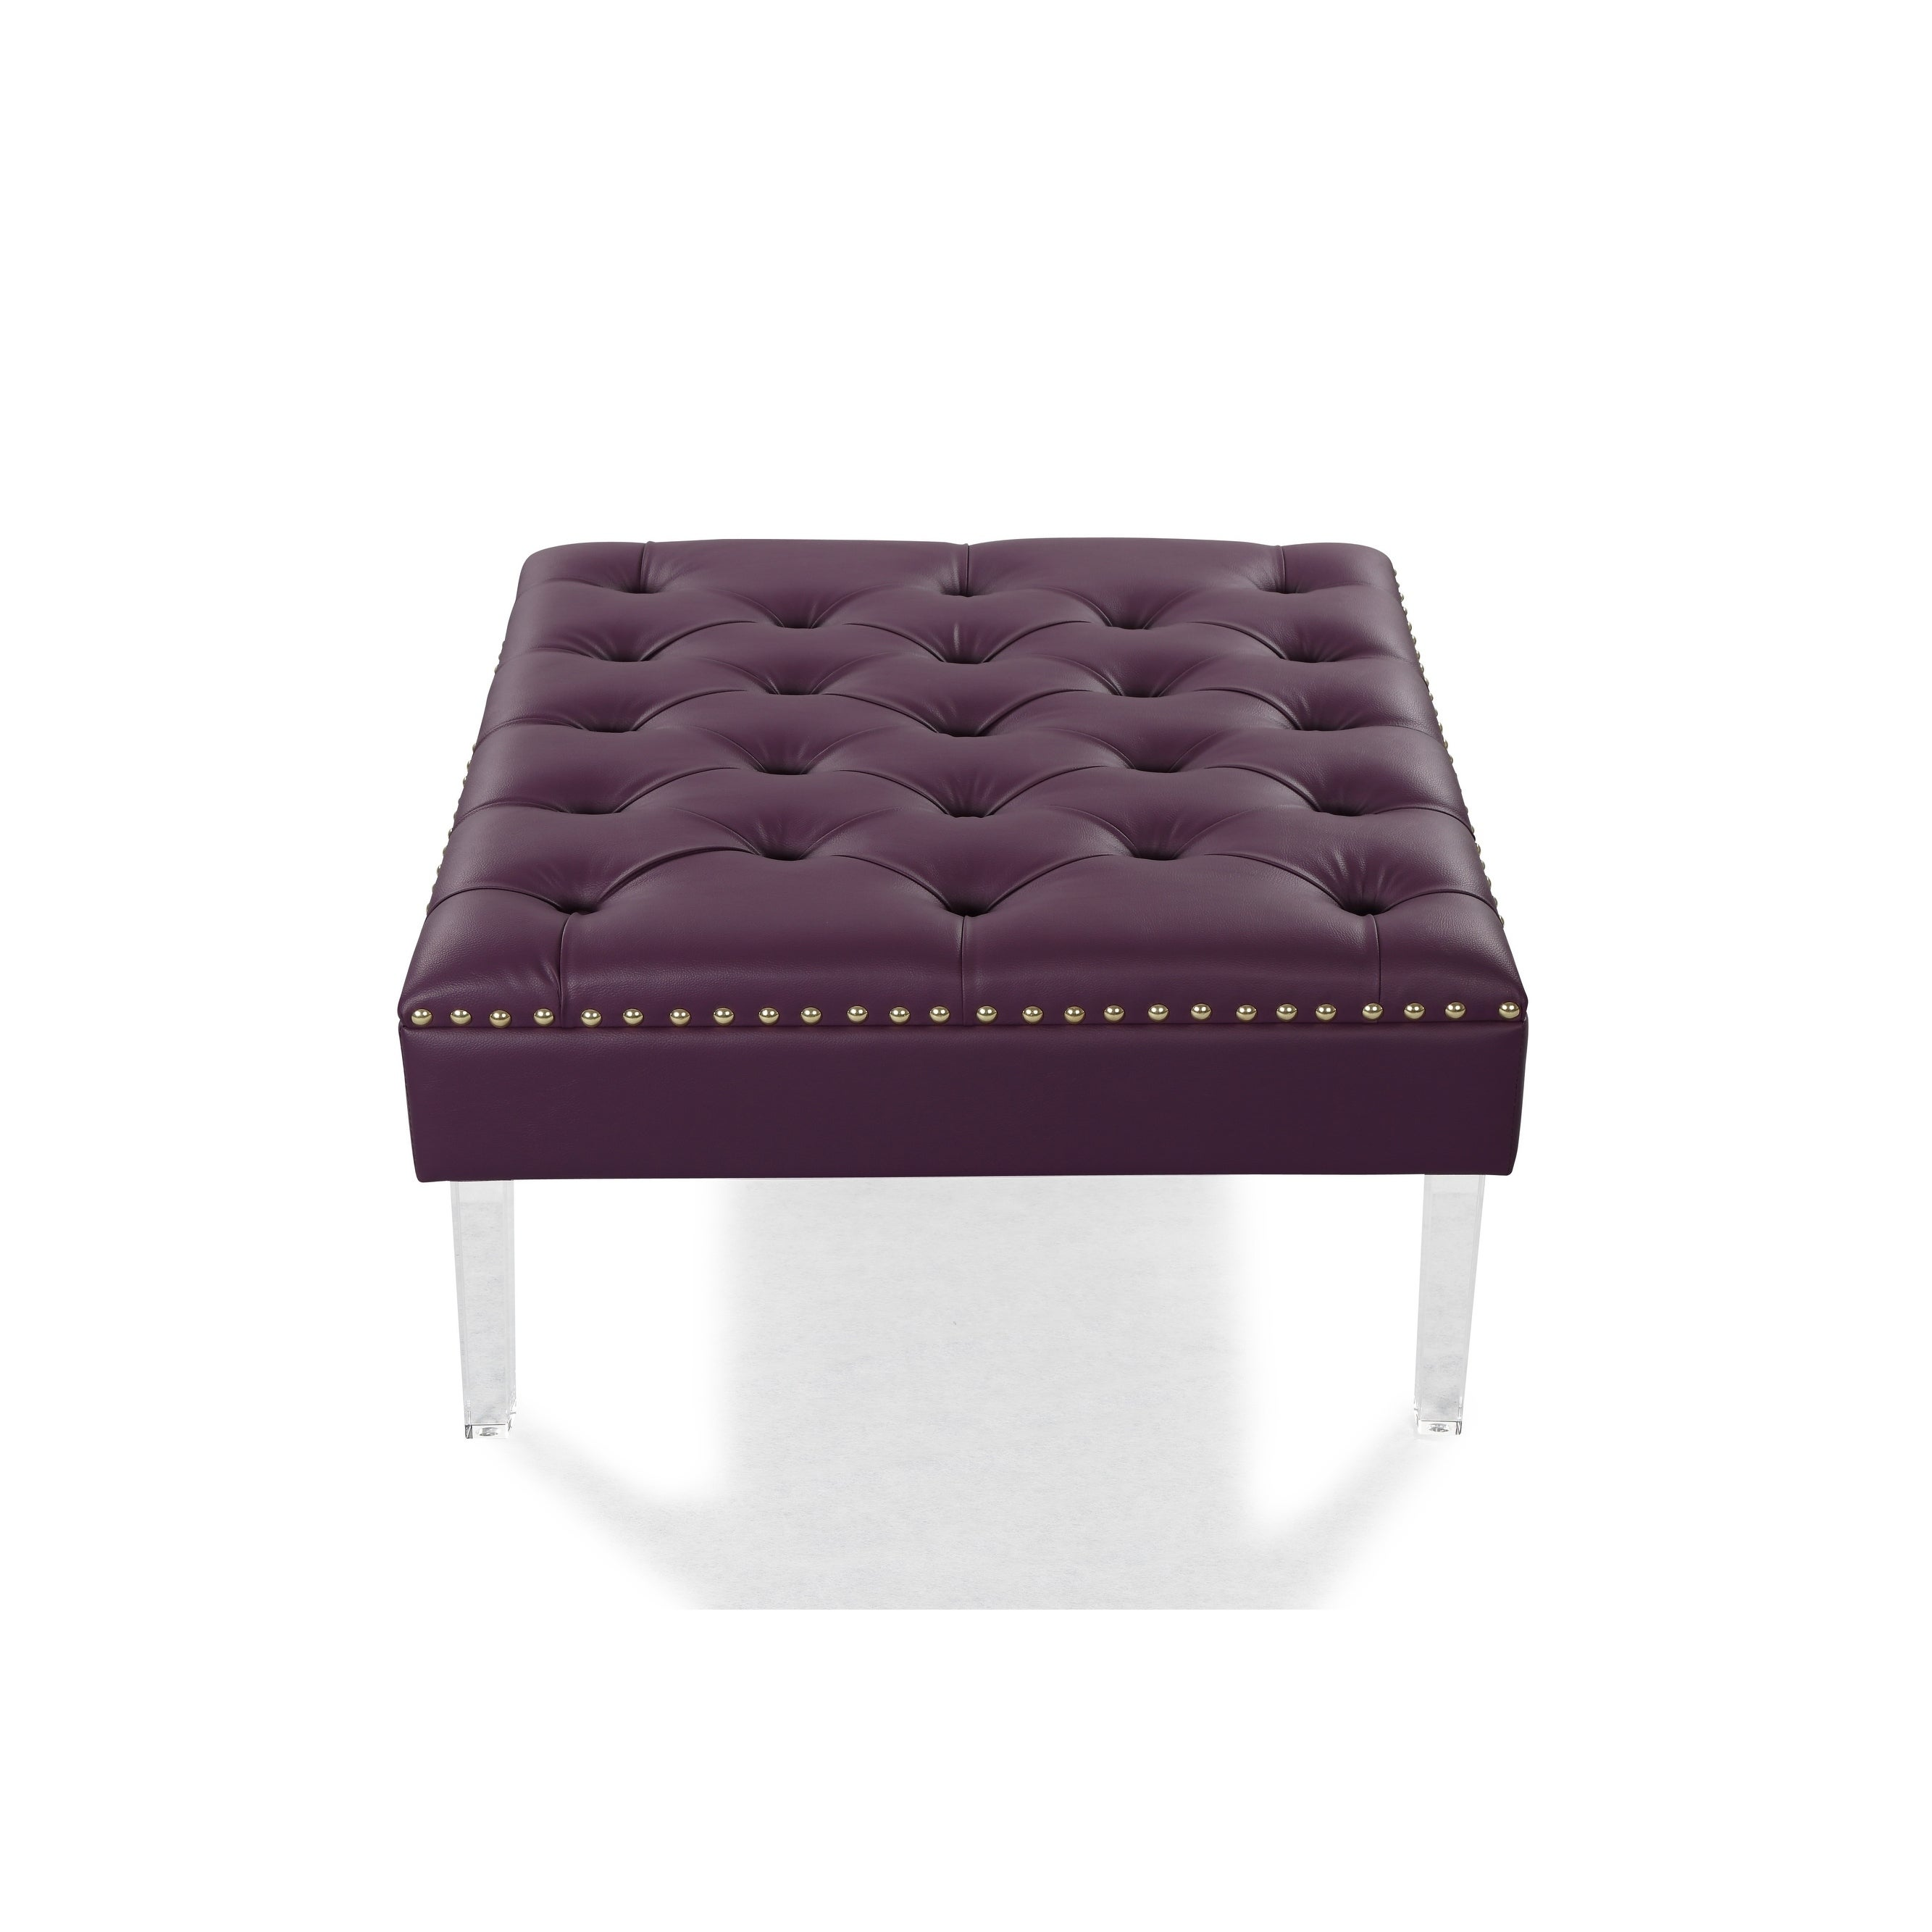 Admirable Chic Home Remi Pu Leather Button Tufted Square Ottoman Dailytribune Chair Design For Home Dailytribuneorg